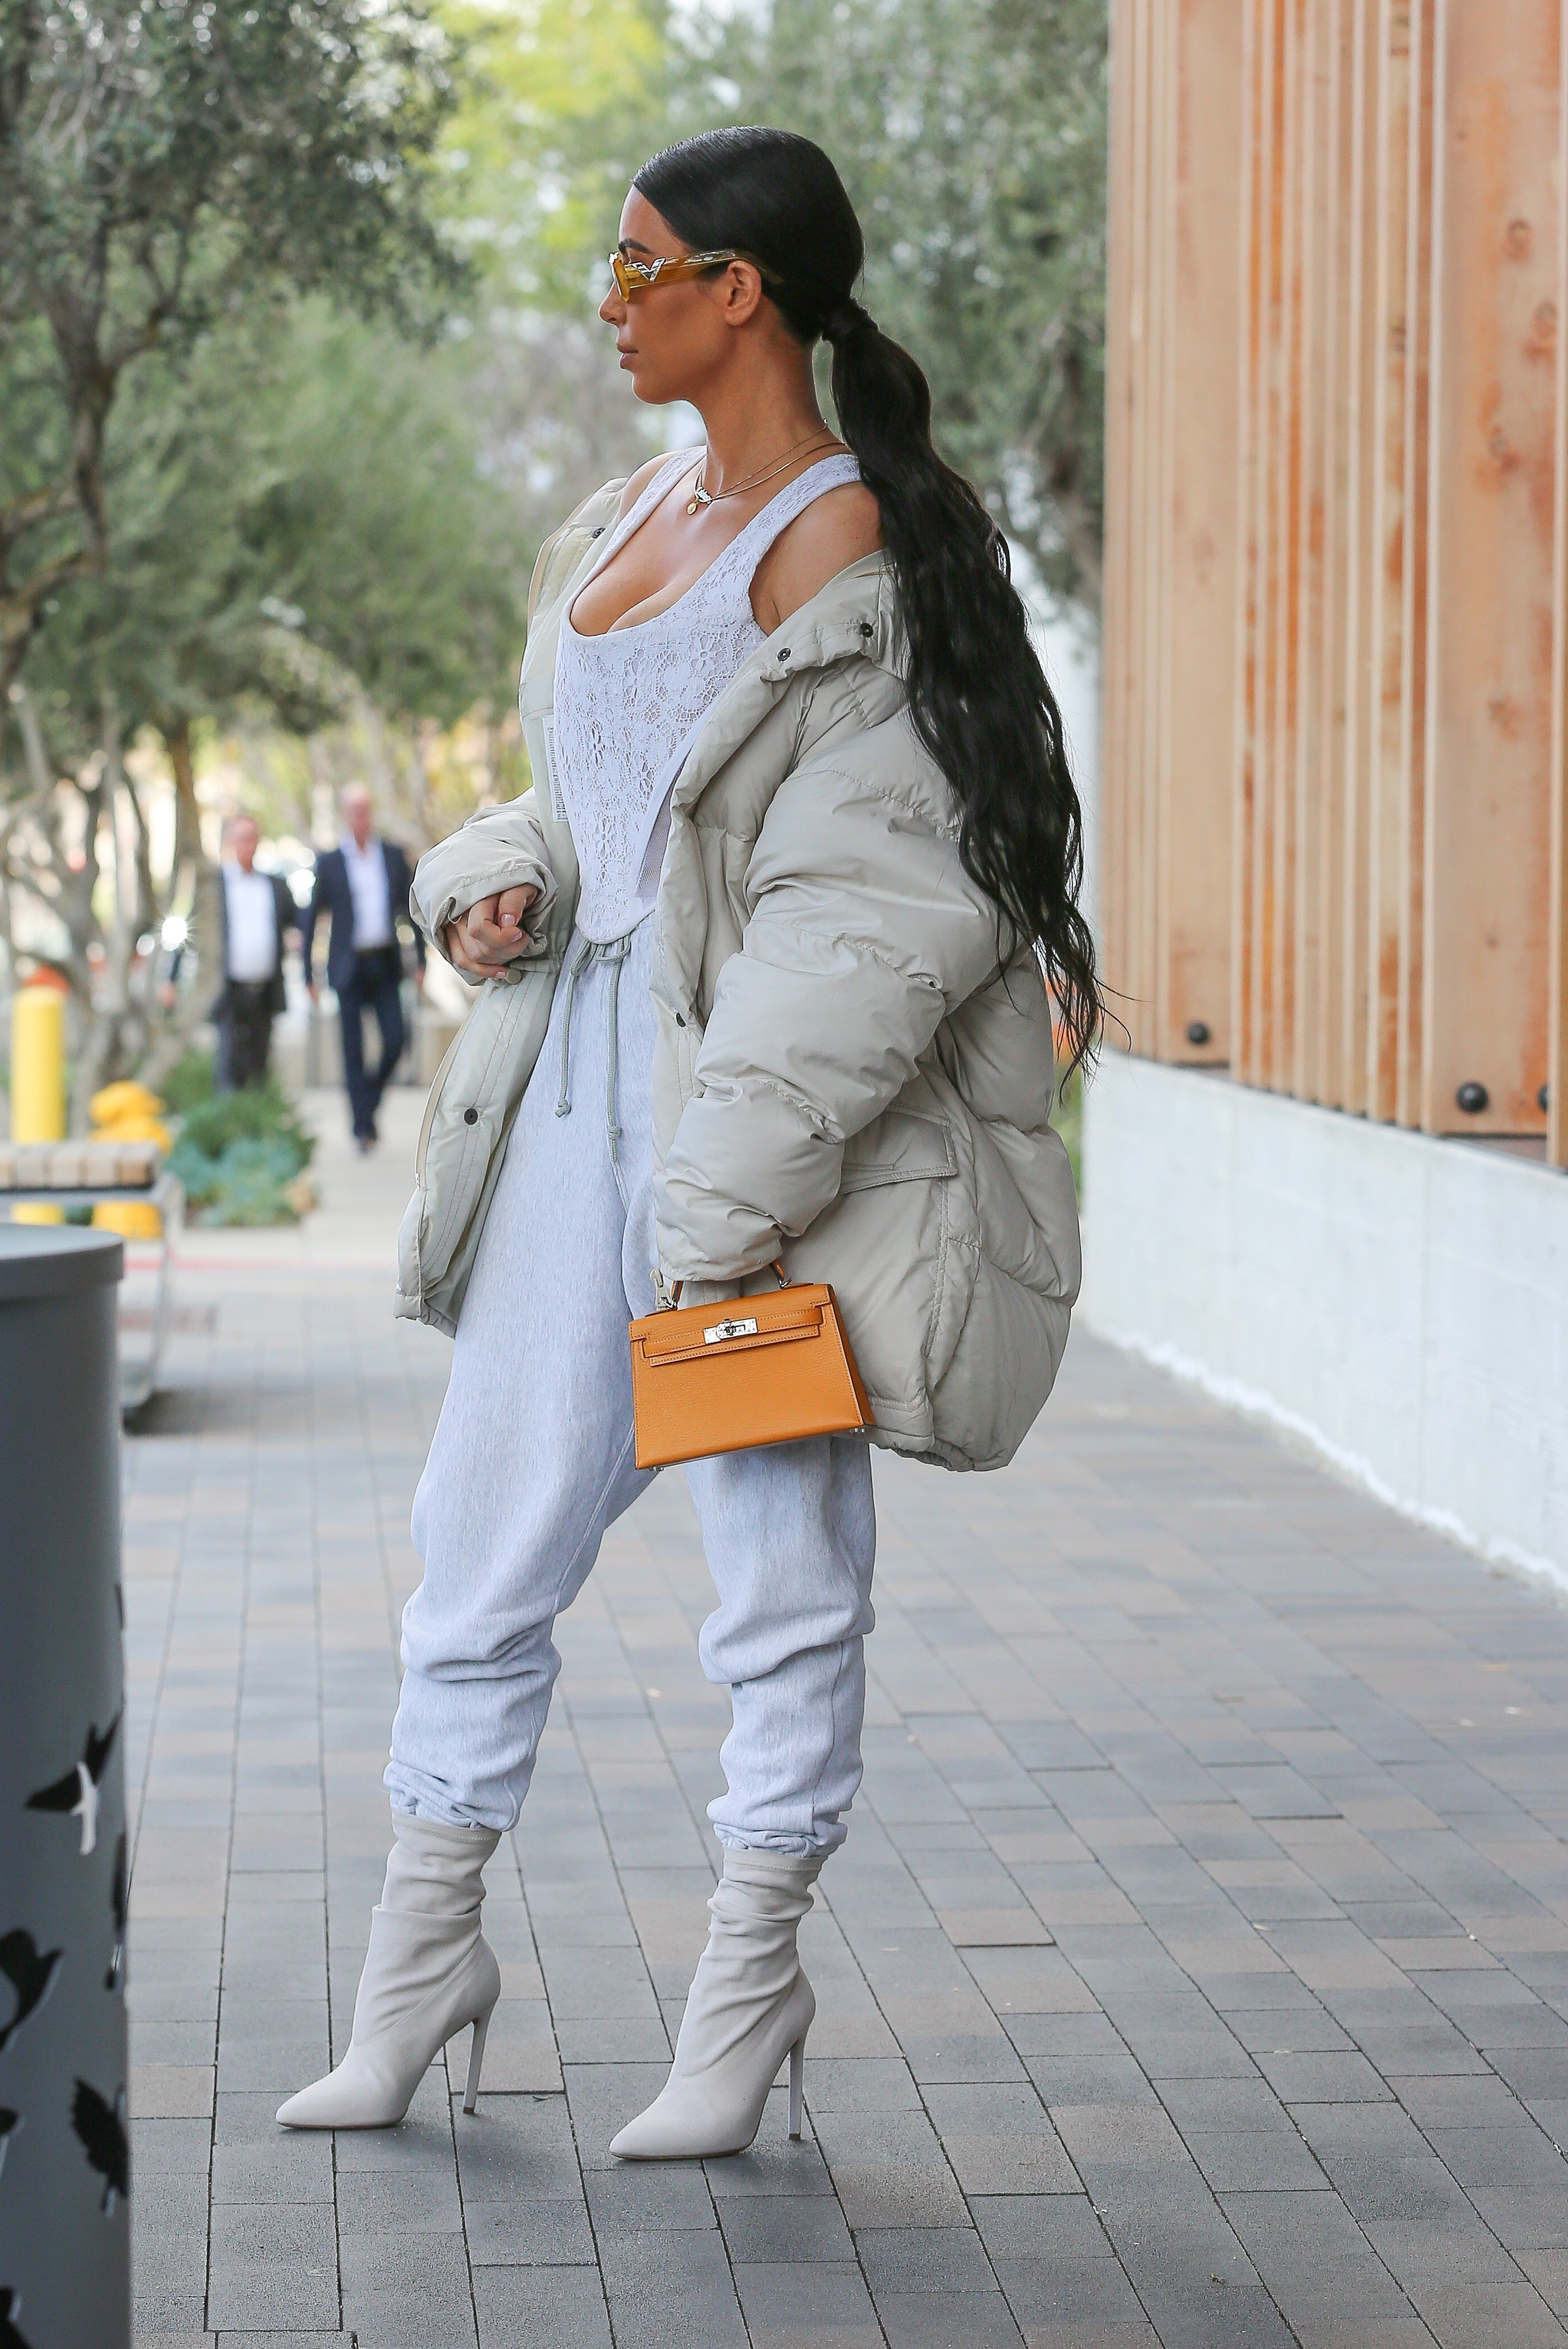 AG_172437 -  - Woodland Hills, CA - Kim Kardashian and Kourtney Kardashian show off their best street style looks while out for lunch with Penelope and Kris Jenner. Kim is wearing sweatpants and a corset style top paired with a white puffer jacket and matching boots. Kourtney is wearing olive green pants with a shearling leather jacket as she carries Penelope inside. Penelope looks cute wearing an Adidas panda outfit.  Pictured: Kris Jenner, Kourtney Kardashian, Kim Kardashian, Penelope Disick  22 FEBRUARY 2017, Image: 321915393, License: Rights-managed, Restrictions: , Model Release: no, Credit line: Profimedia, AKM-GSI